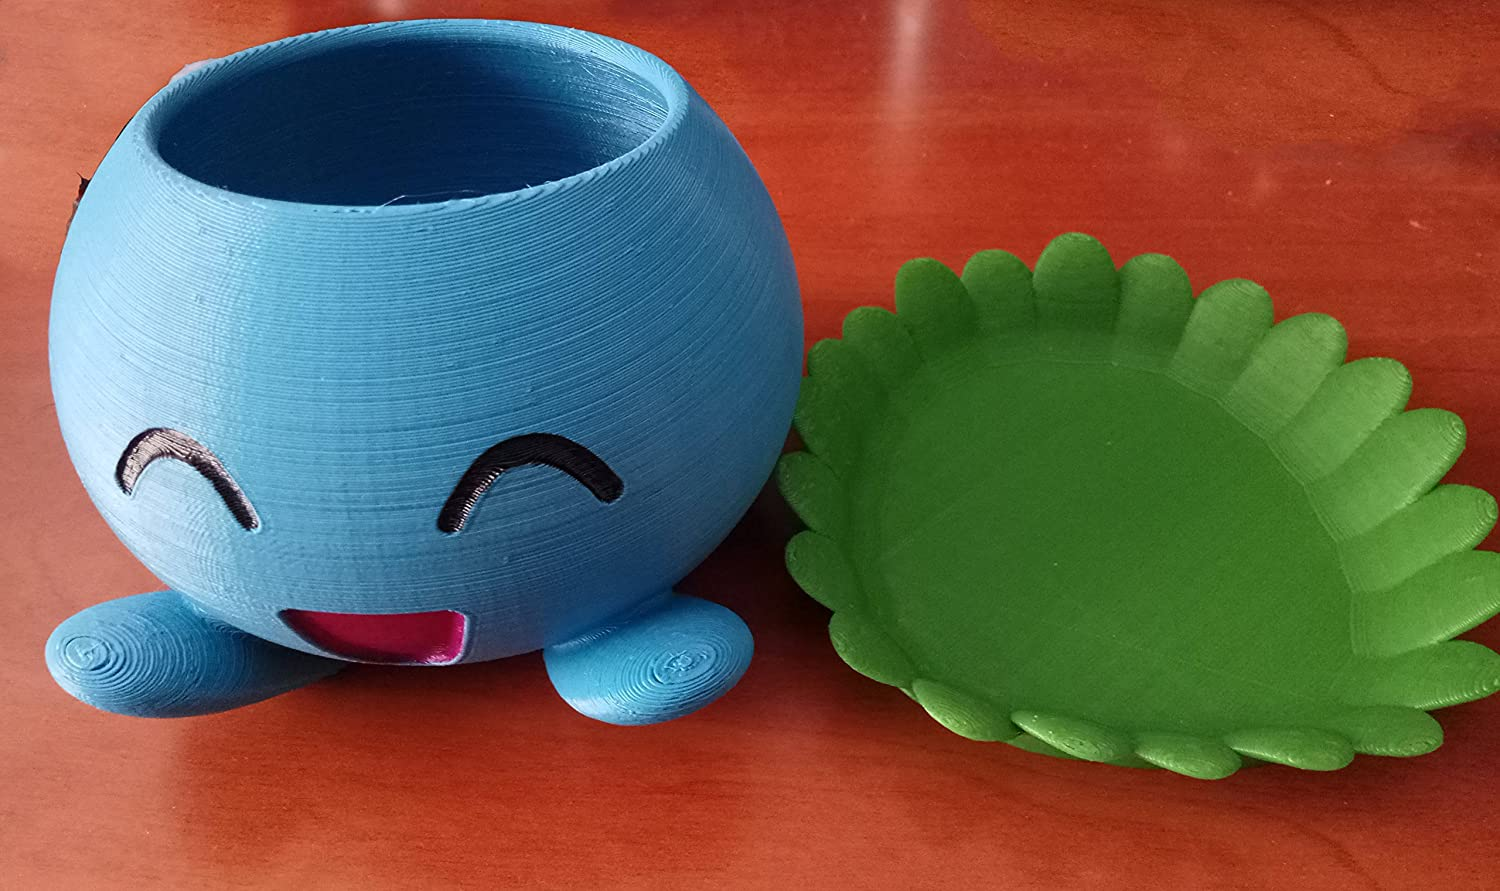 Maceta Pokemon Oddish Impresa 3D: Amazon.es: Handmade